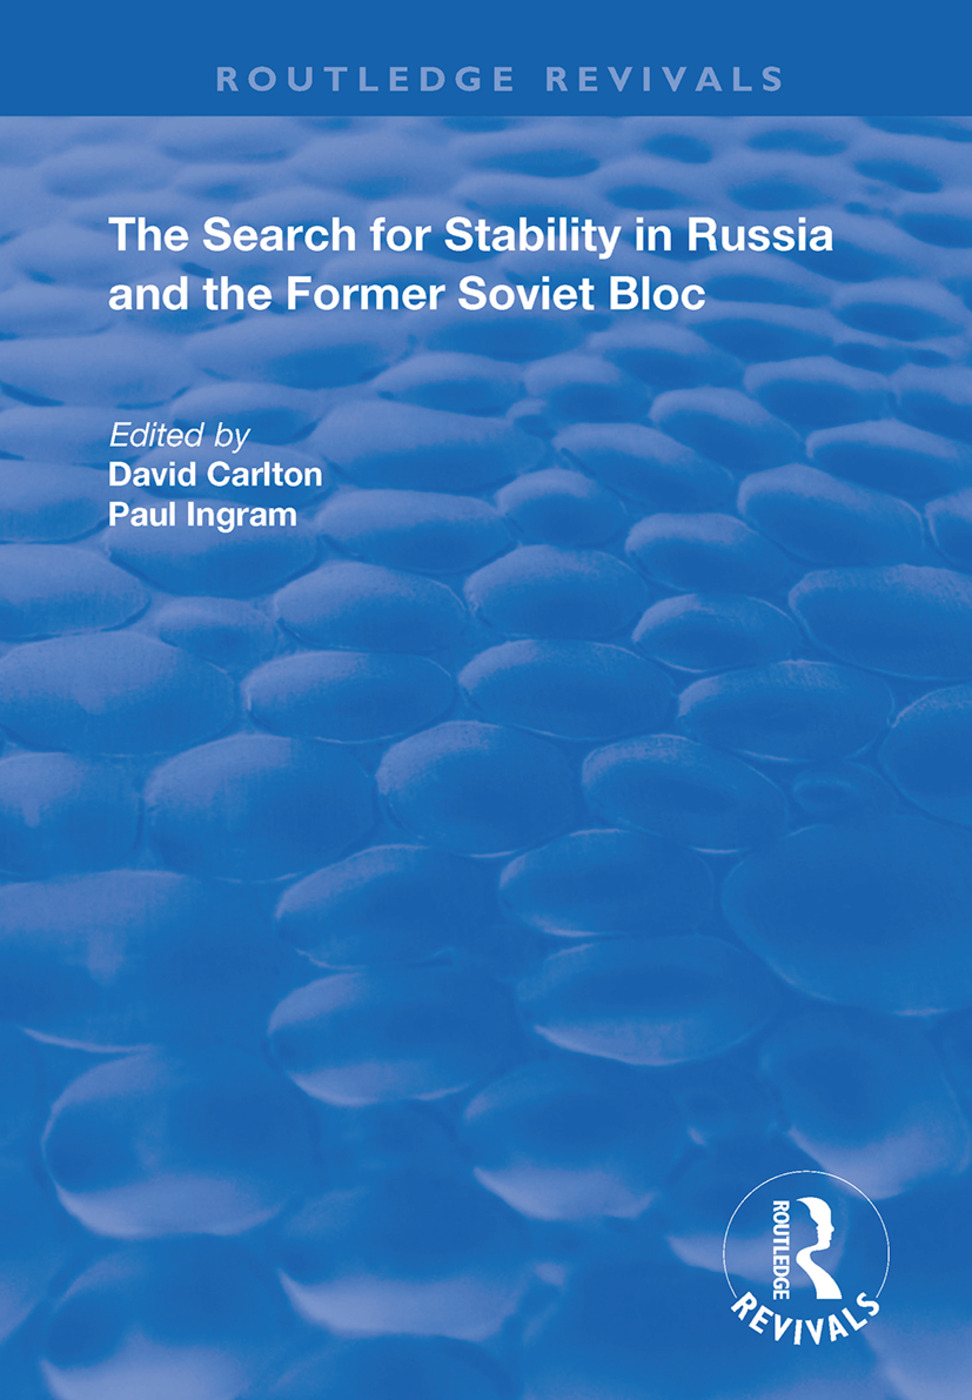 The Search for Stability in Russia and the Former Soviet Bloc